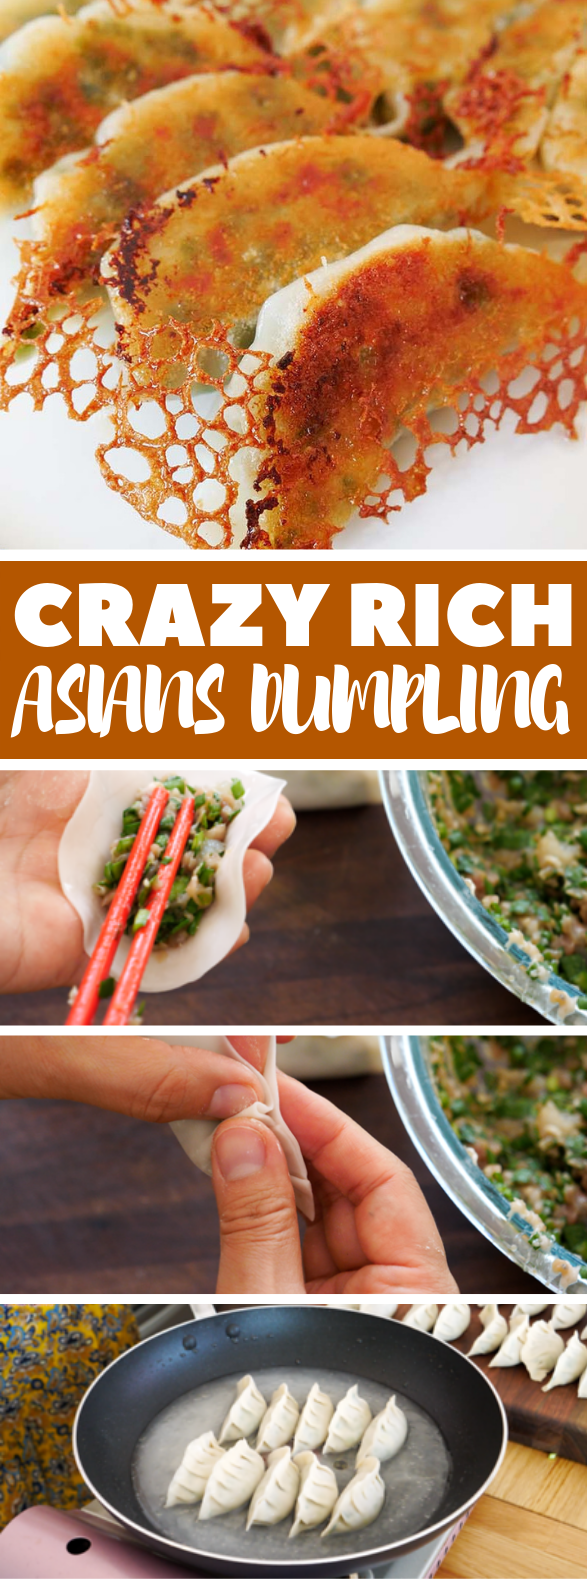 CRAZY RICH ASIANS DUMPLING RECIPE #appetizers #asianrecipes